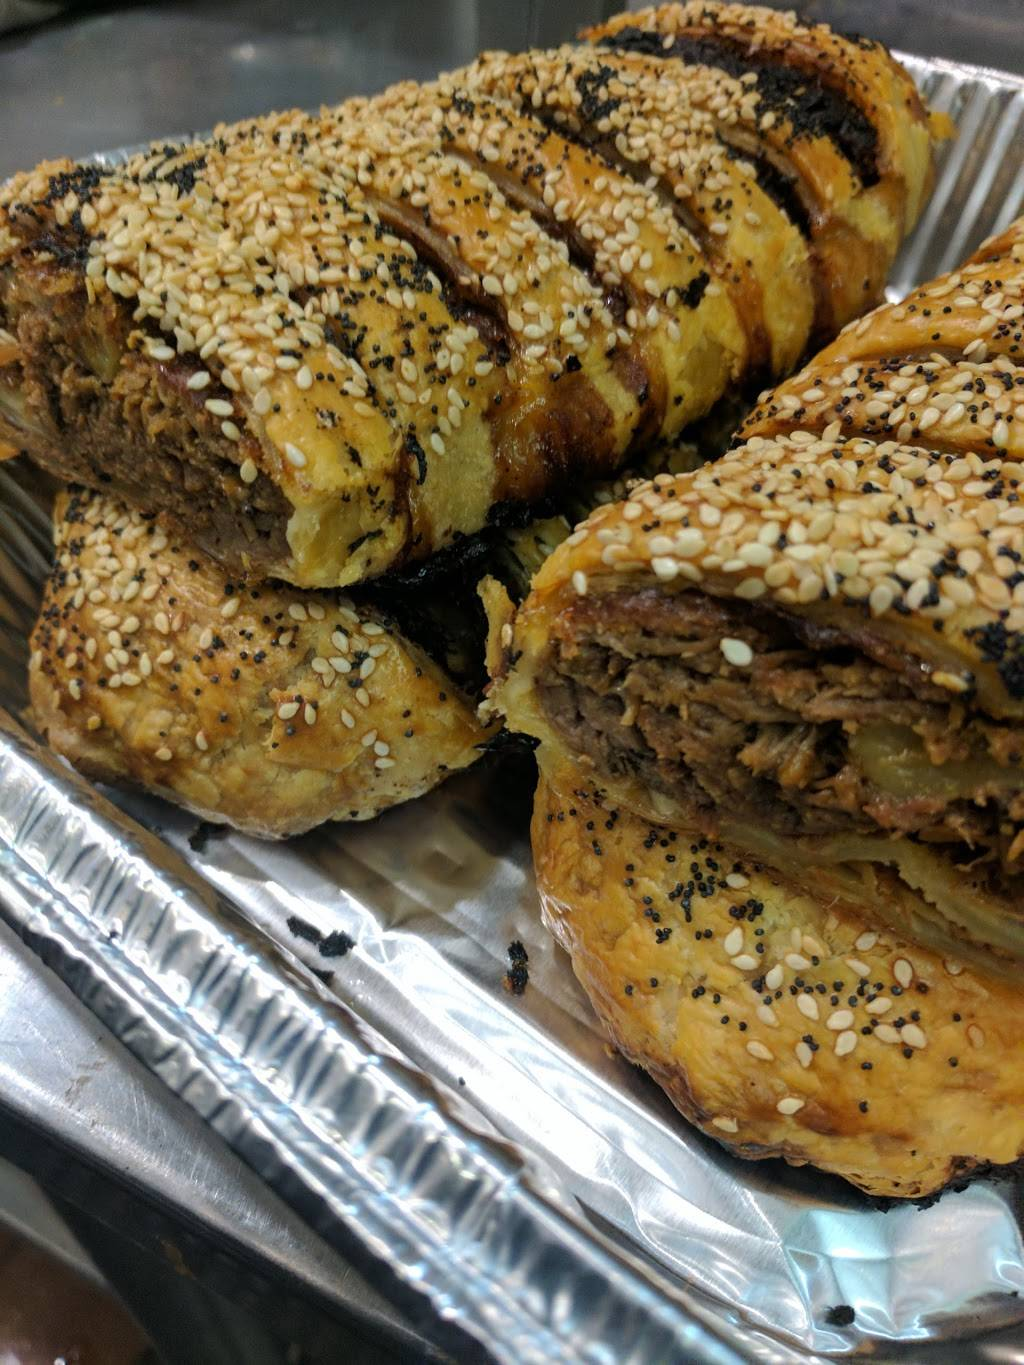 Lieders Pico- Glatt Kosher Take-out & Catering   meal takeaway   8721 Pico Blvd, Los Angeles, CA 90035, USA   3109097223 OR +1 310-909-7223